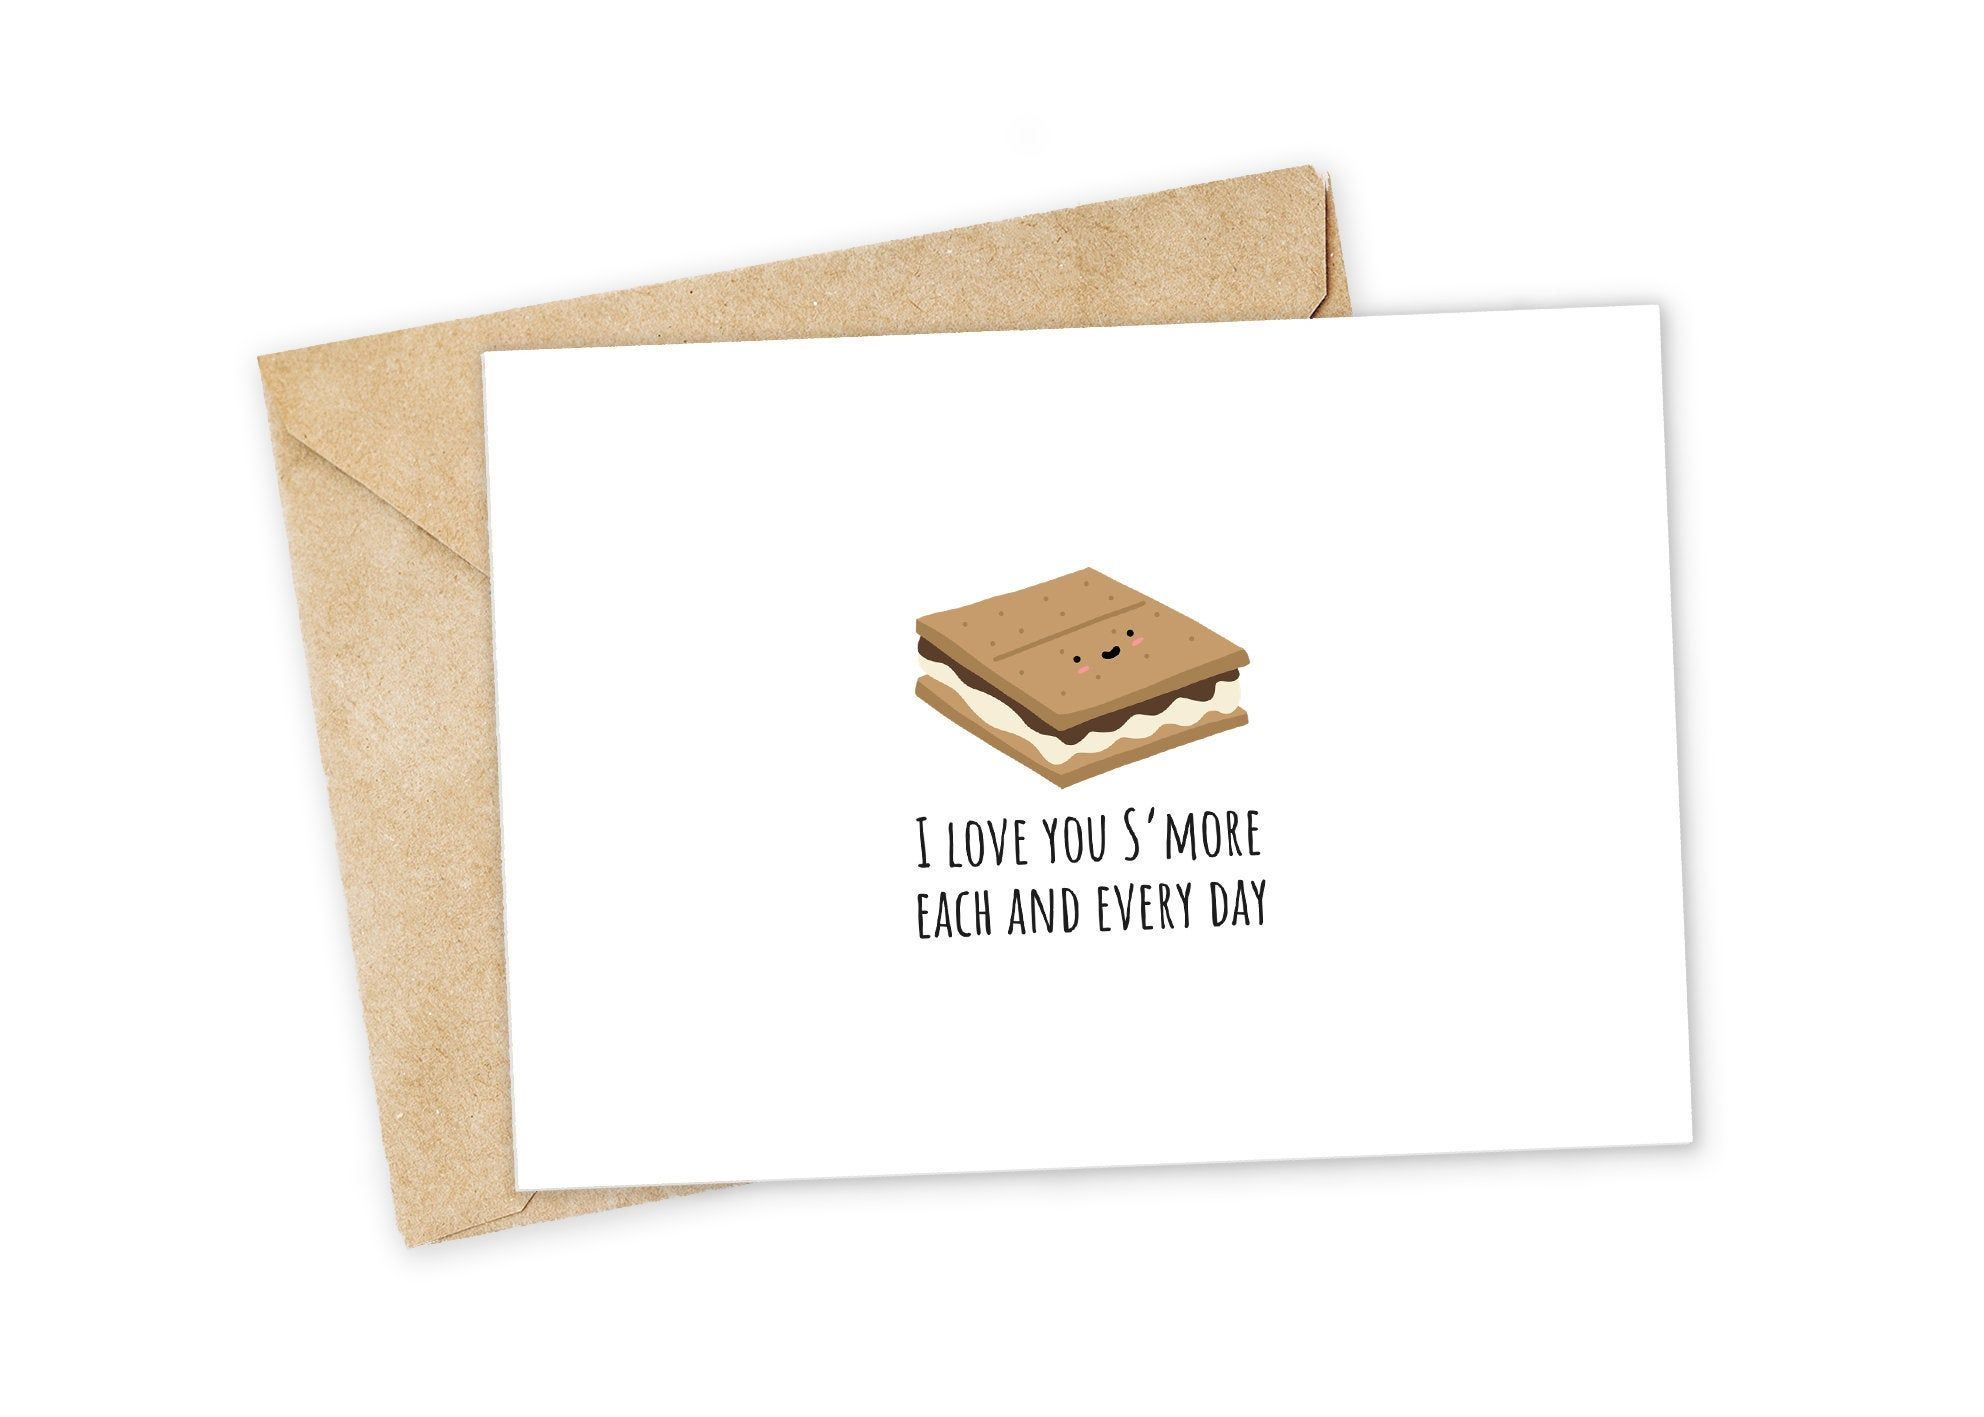 I Love You Smore Each Day S Mores Greeting Card I Love Etsy In 2021 Cards For Boyfriend Punny Cards Nerdy Puns